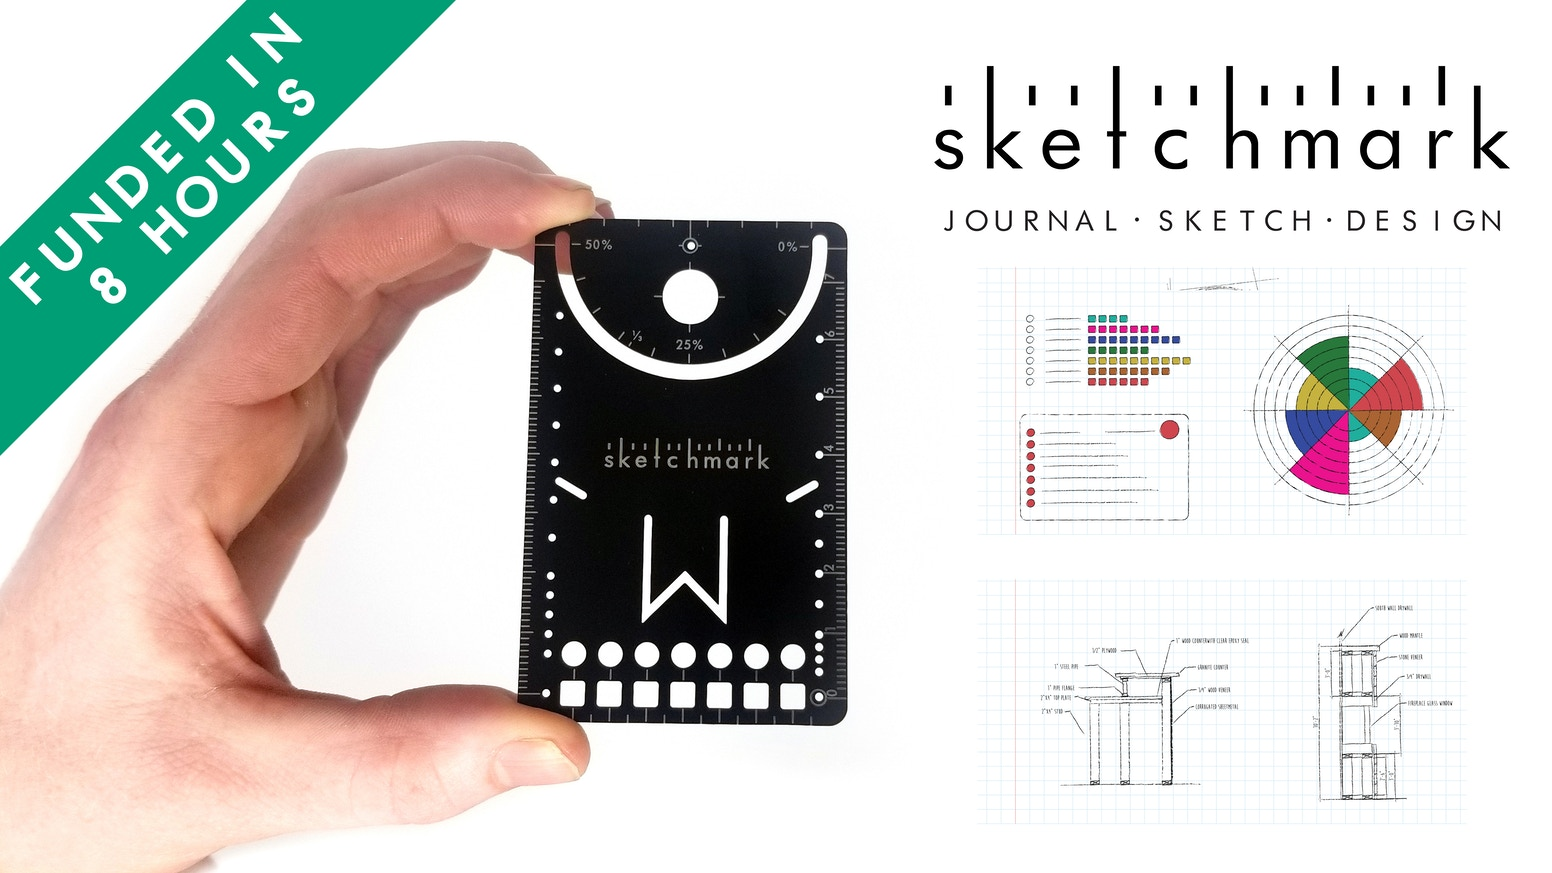 A pocket-size tool for journaling, sketching and designing with a built-in bookmark.